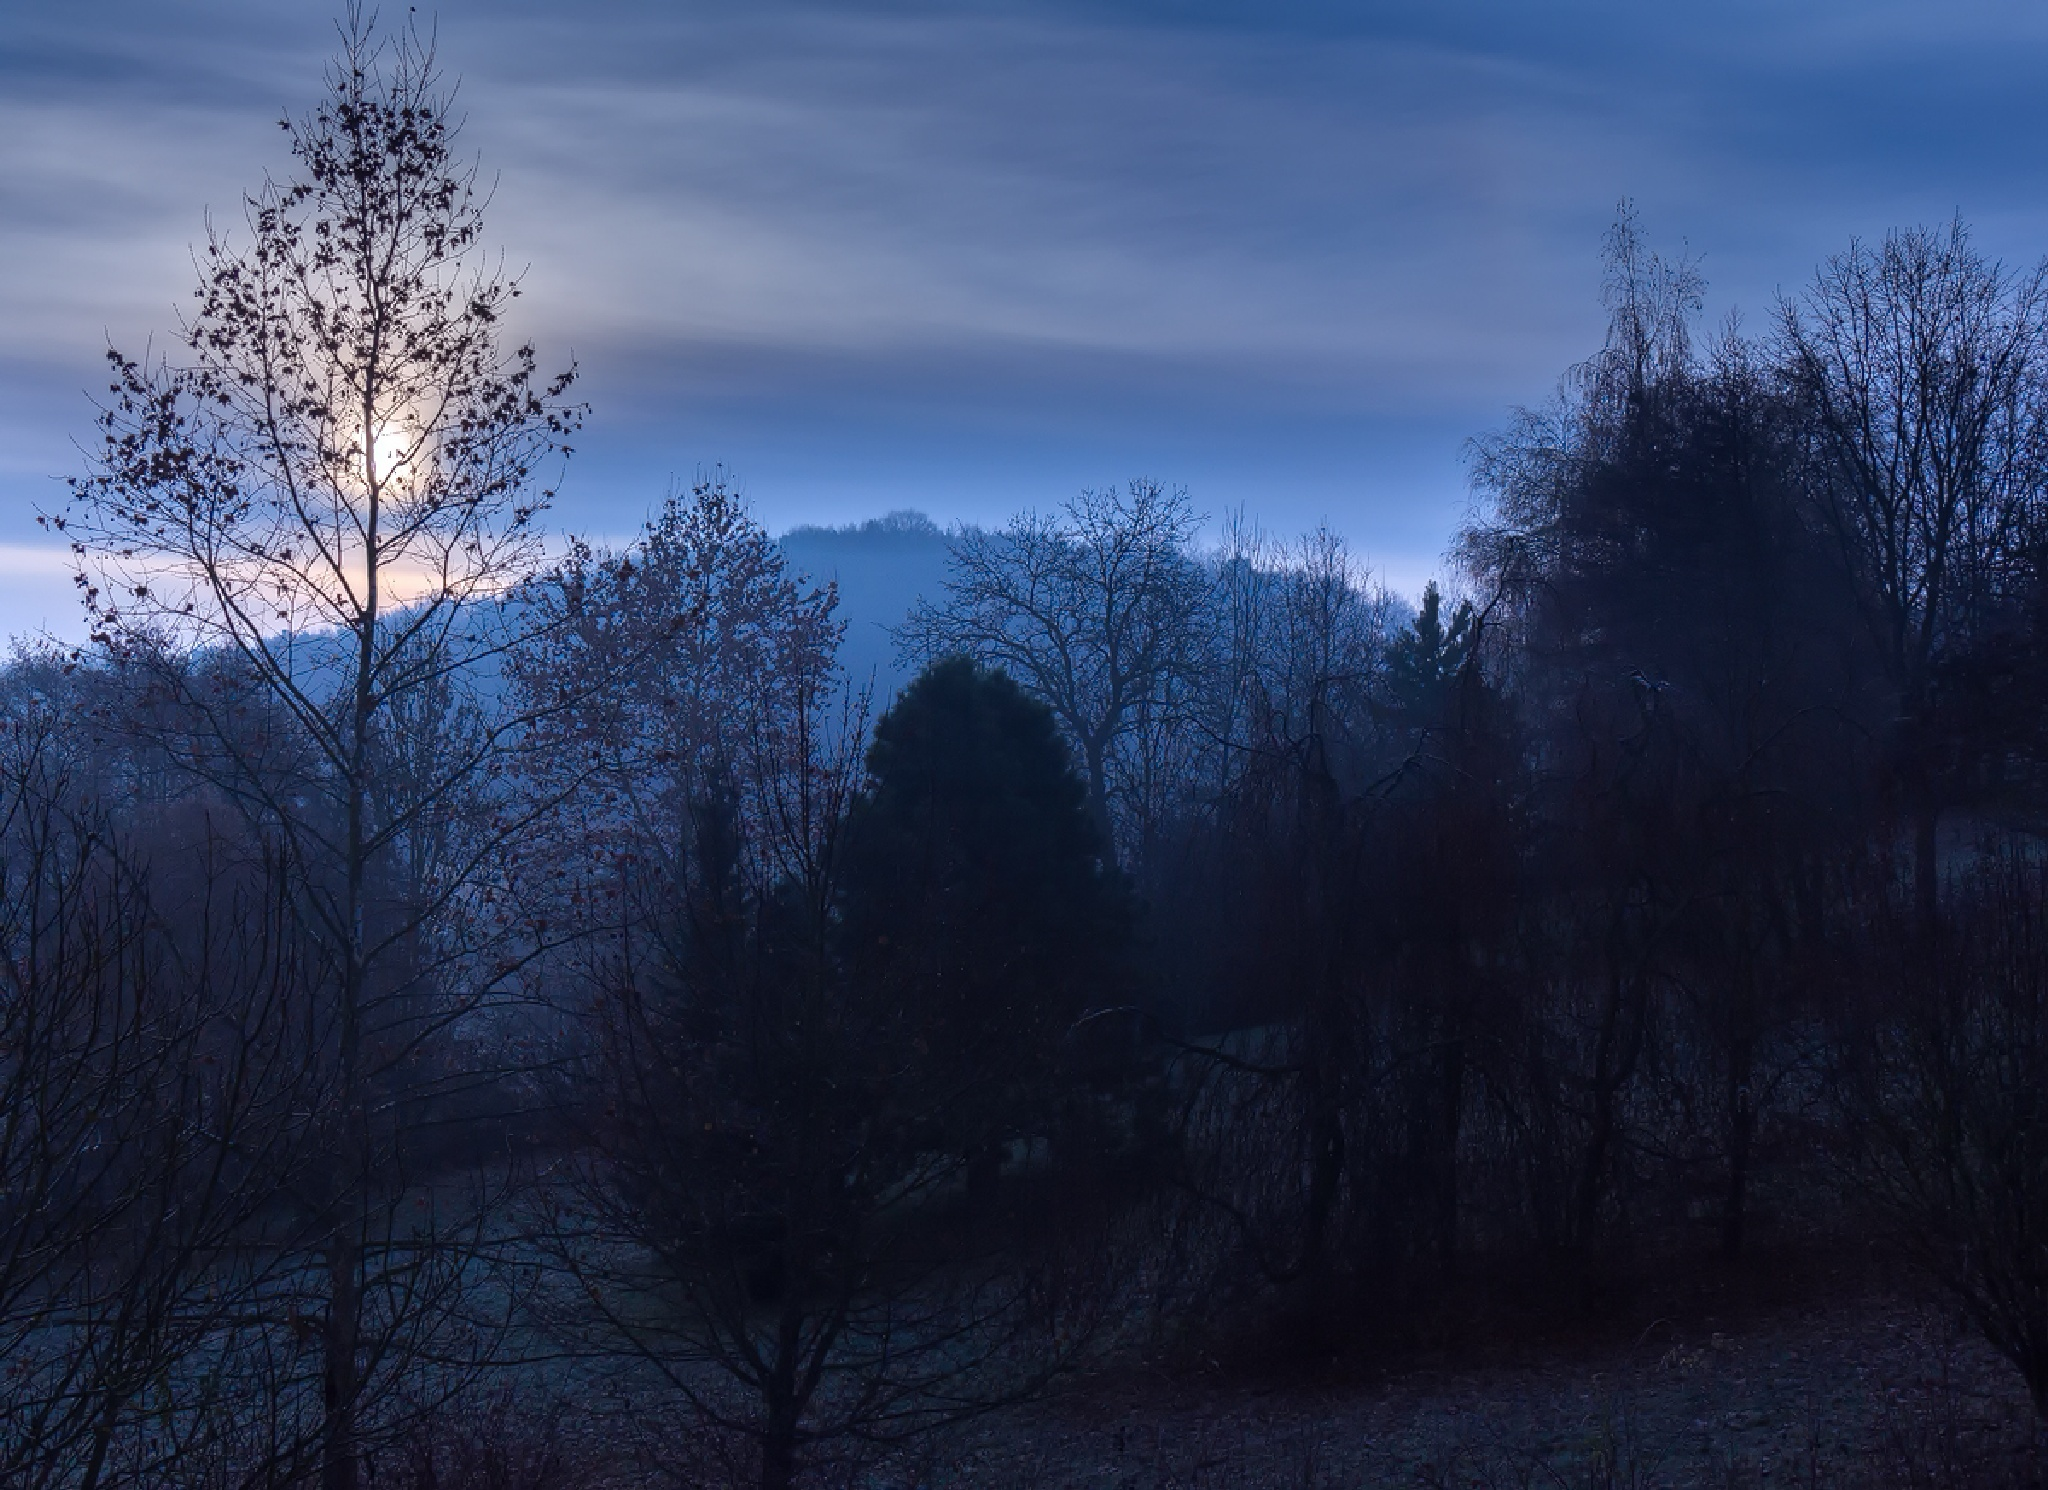 Misty morning by Michael Freitag